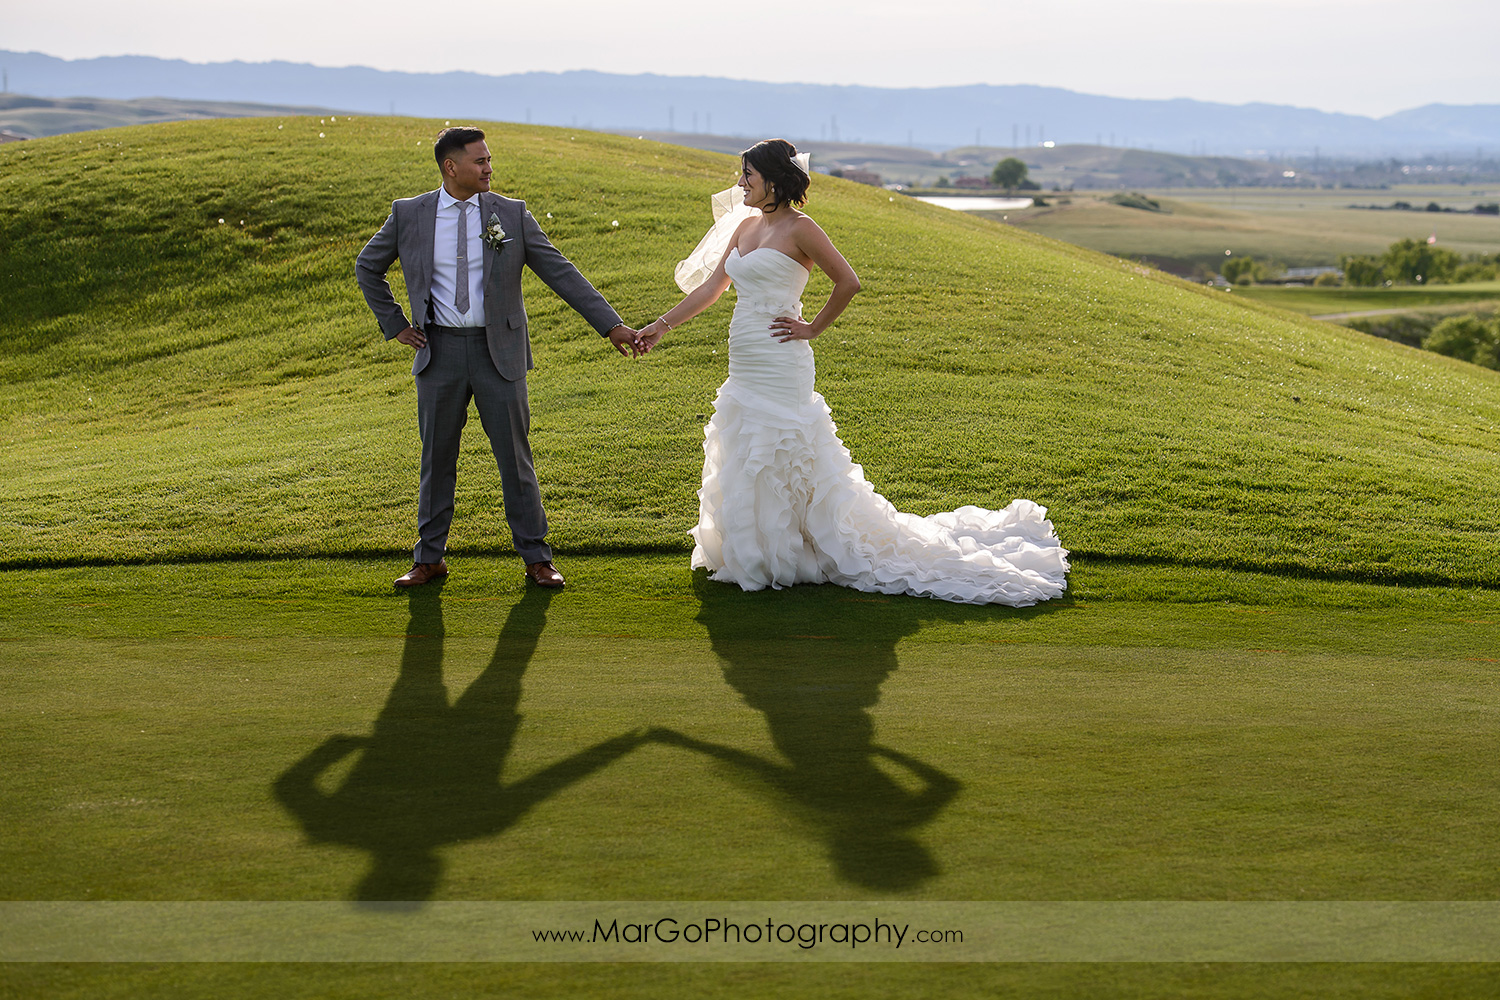 shadows of bride and groom at Poppy Ridge Golf Course in Livermore